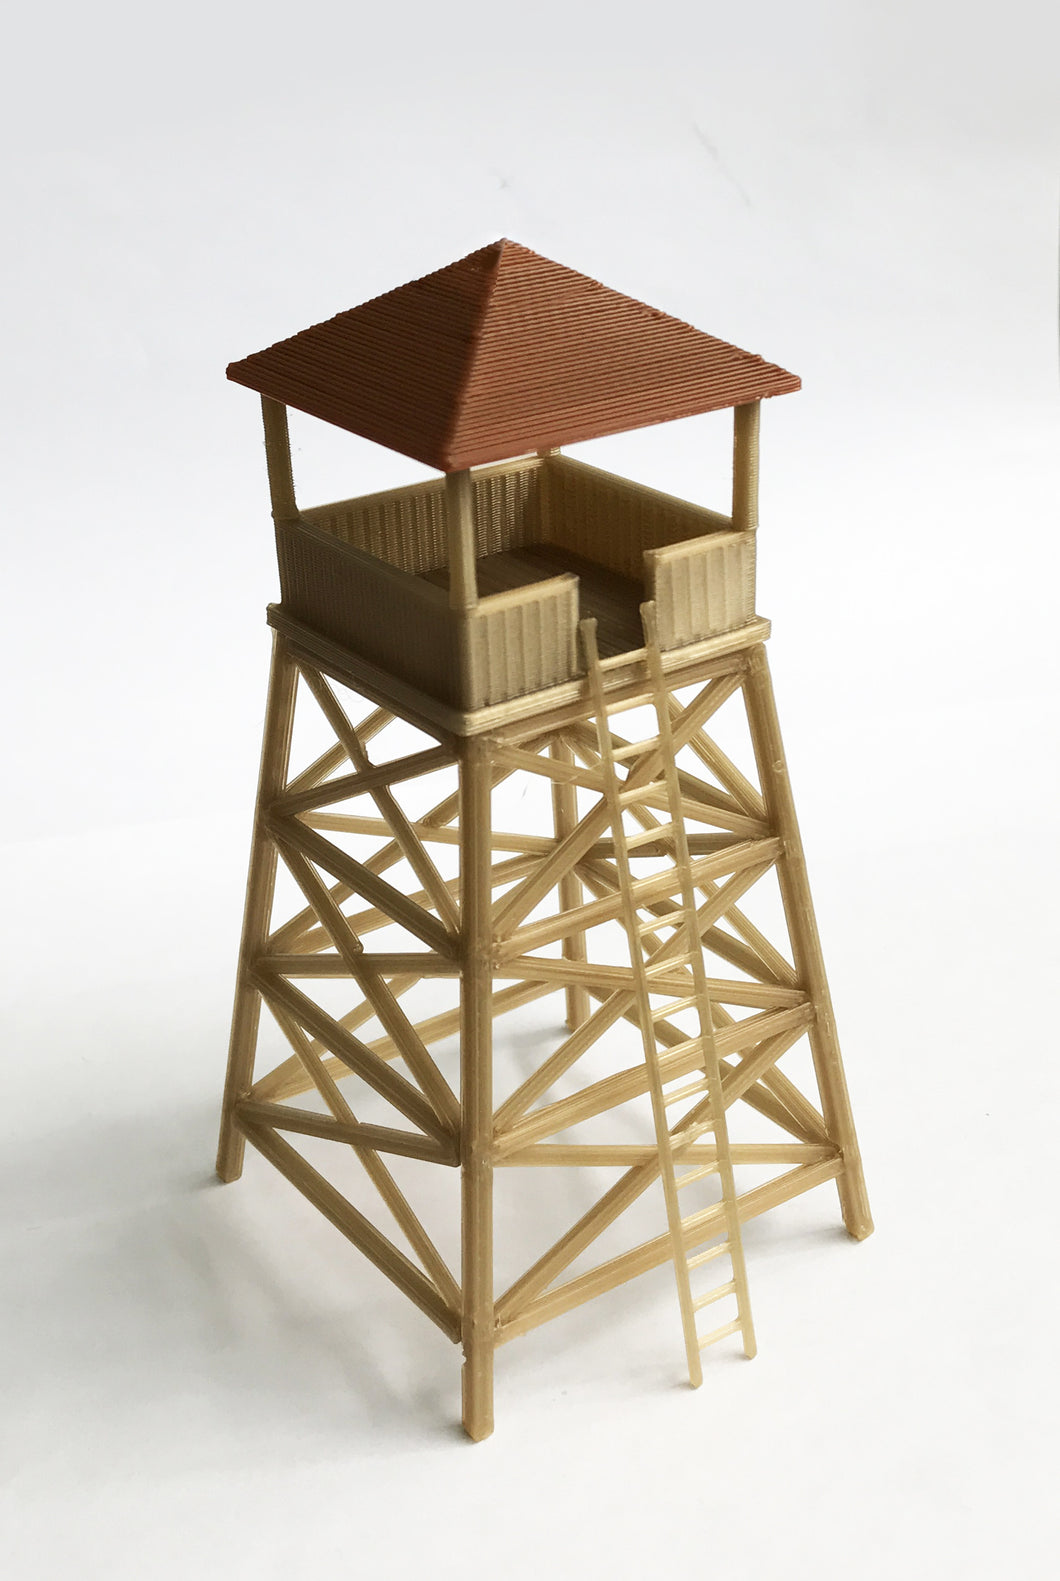 Country Watchtower / Lookout Tower (tall) HO Scale Outland Models Railway Layout